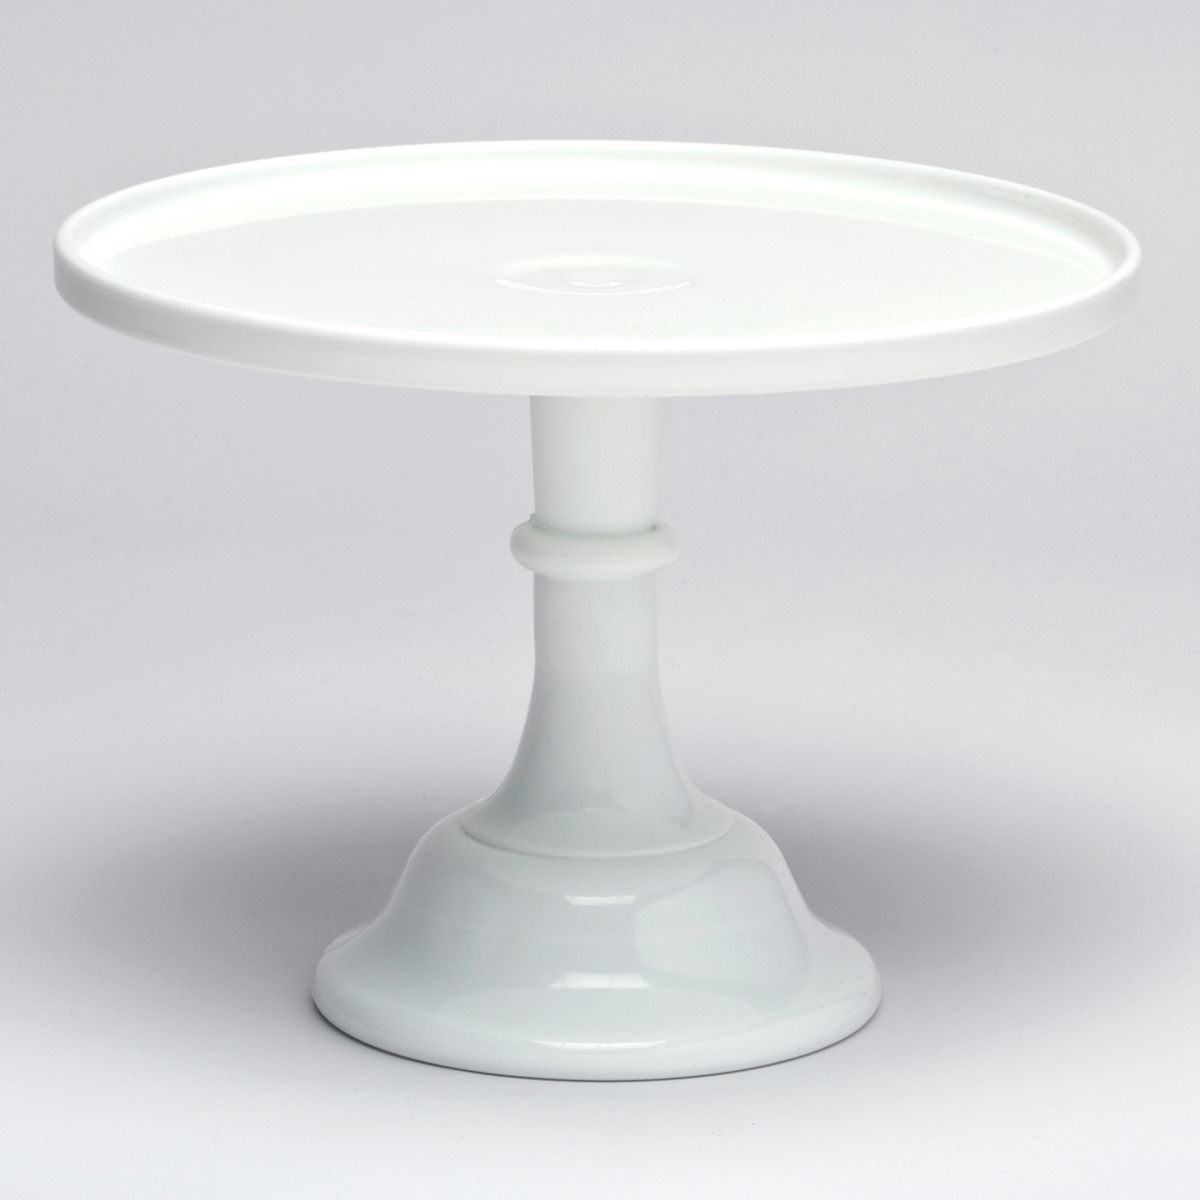 Shop Target for Cake Stands & Tiered Servers you will love at great low prices. Spend $35+ or use your REDcard & get free 2-day shipping on most items or same-day pick-up in store.